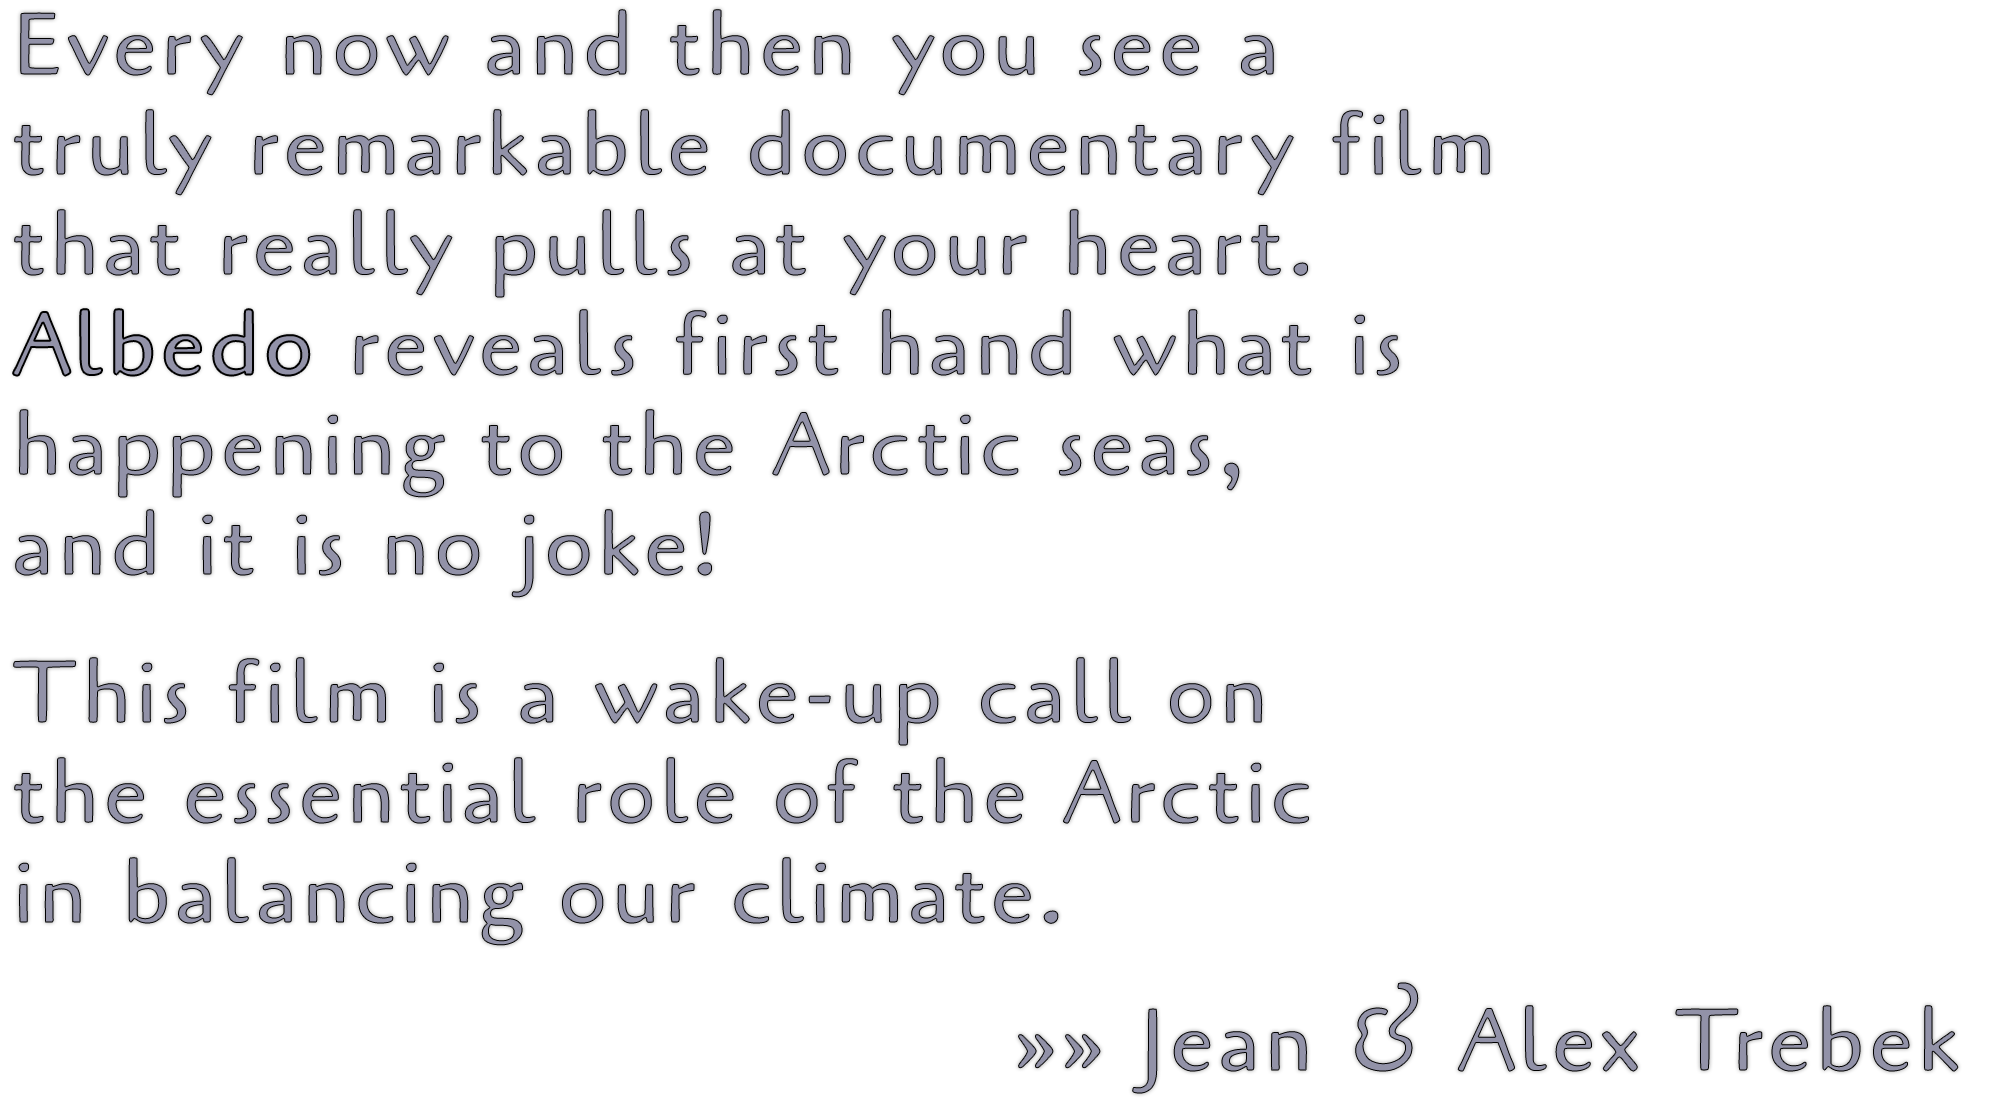 Every now and then you see a truly remarkable documentary film that really pulls at your heart. Albedo reveals first hand what is happening to the Arctic seas, and it is no joke! This film is a wake-up call on the essential role of the Arctic in balancing our climate. »» Jean & Alex Trebek